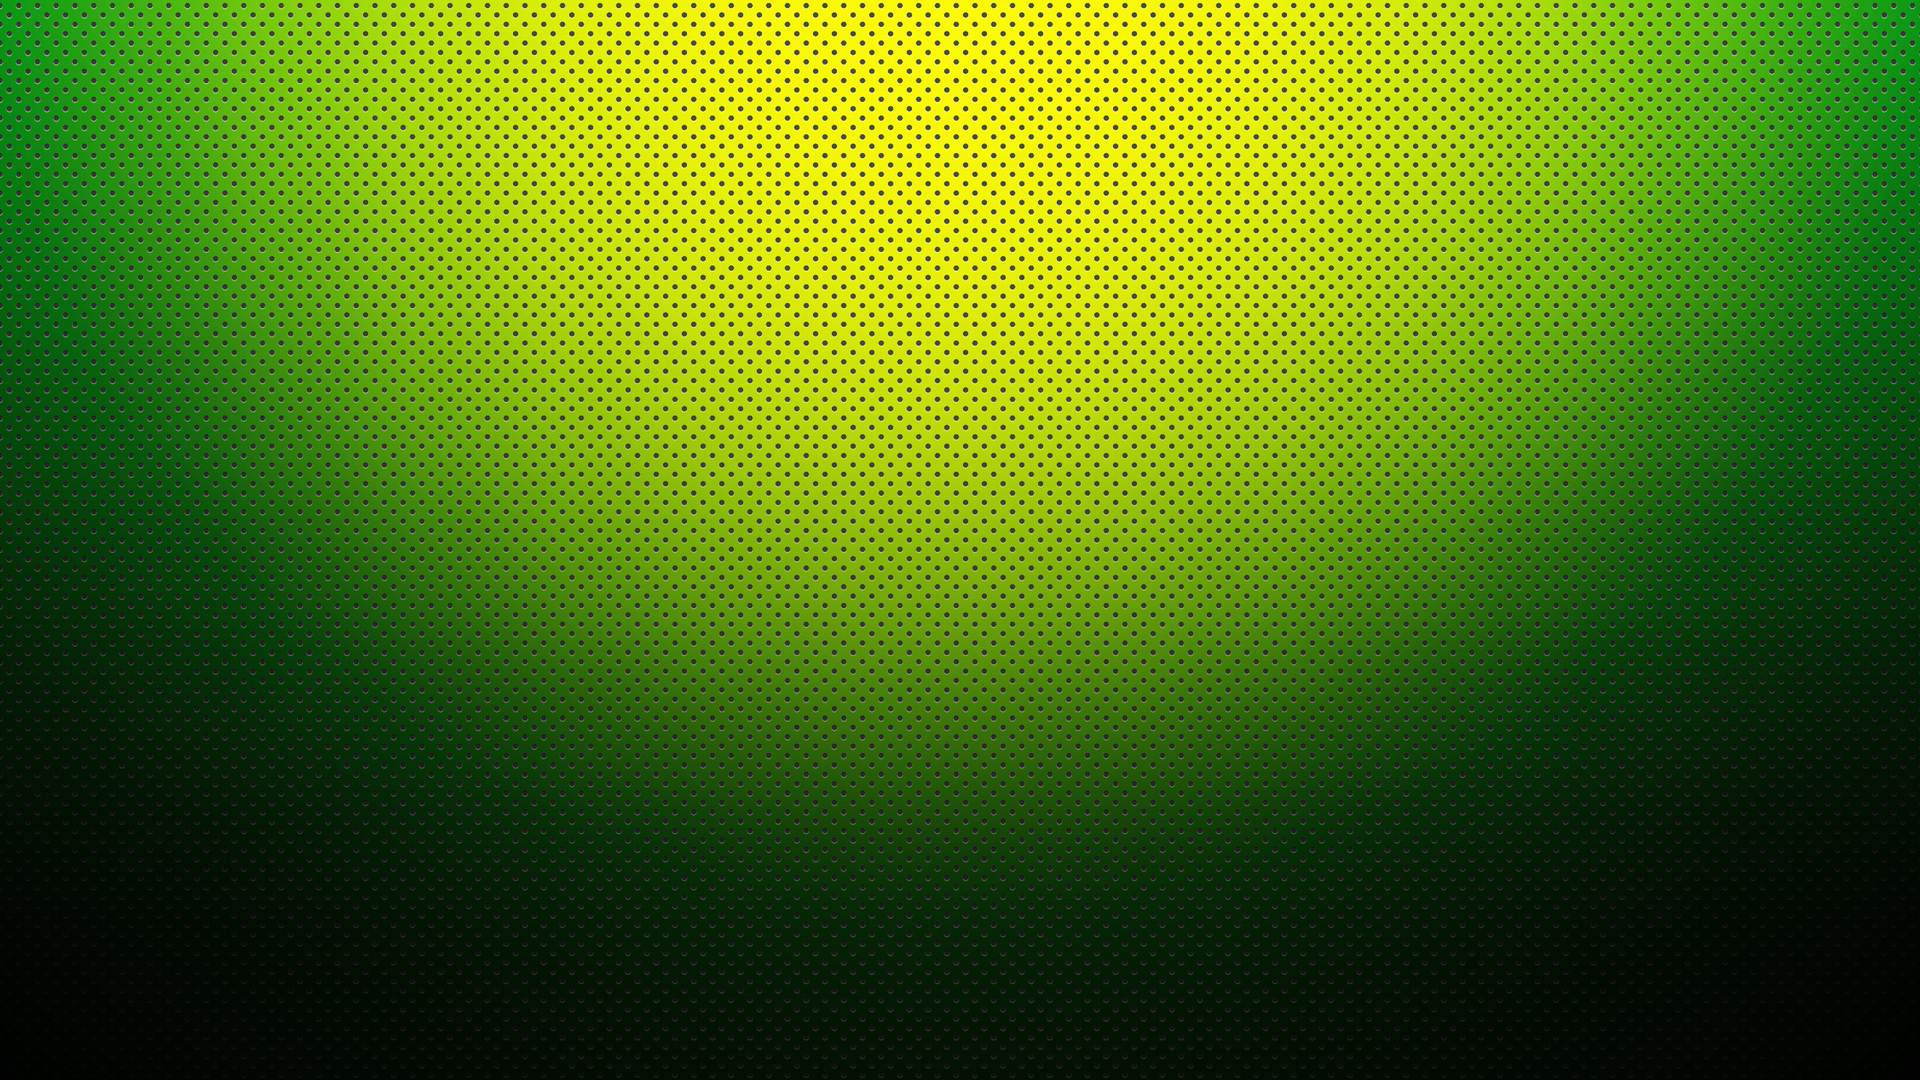 64 green hd wallpapers backgrounds wallpaper abyss